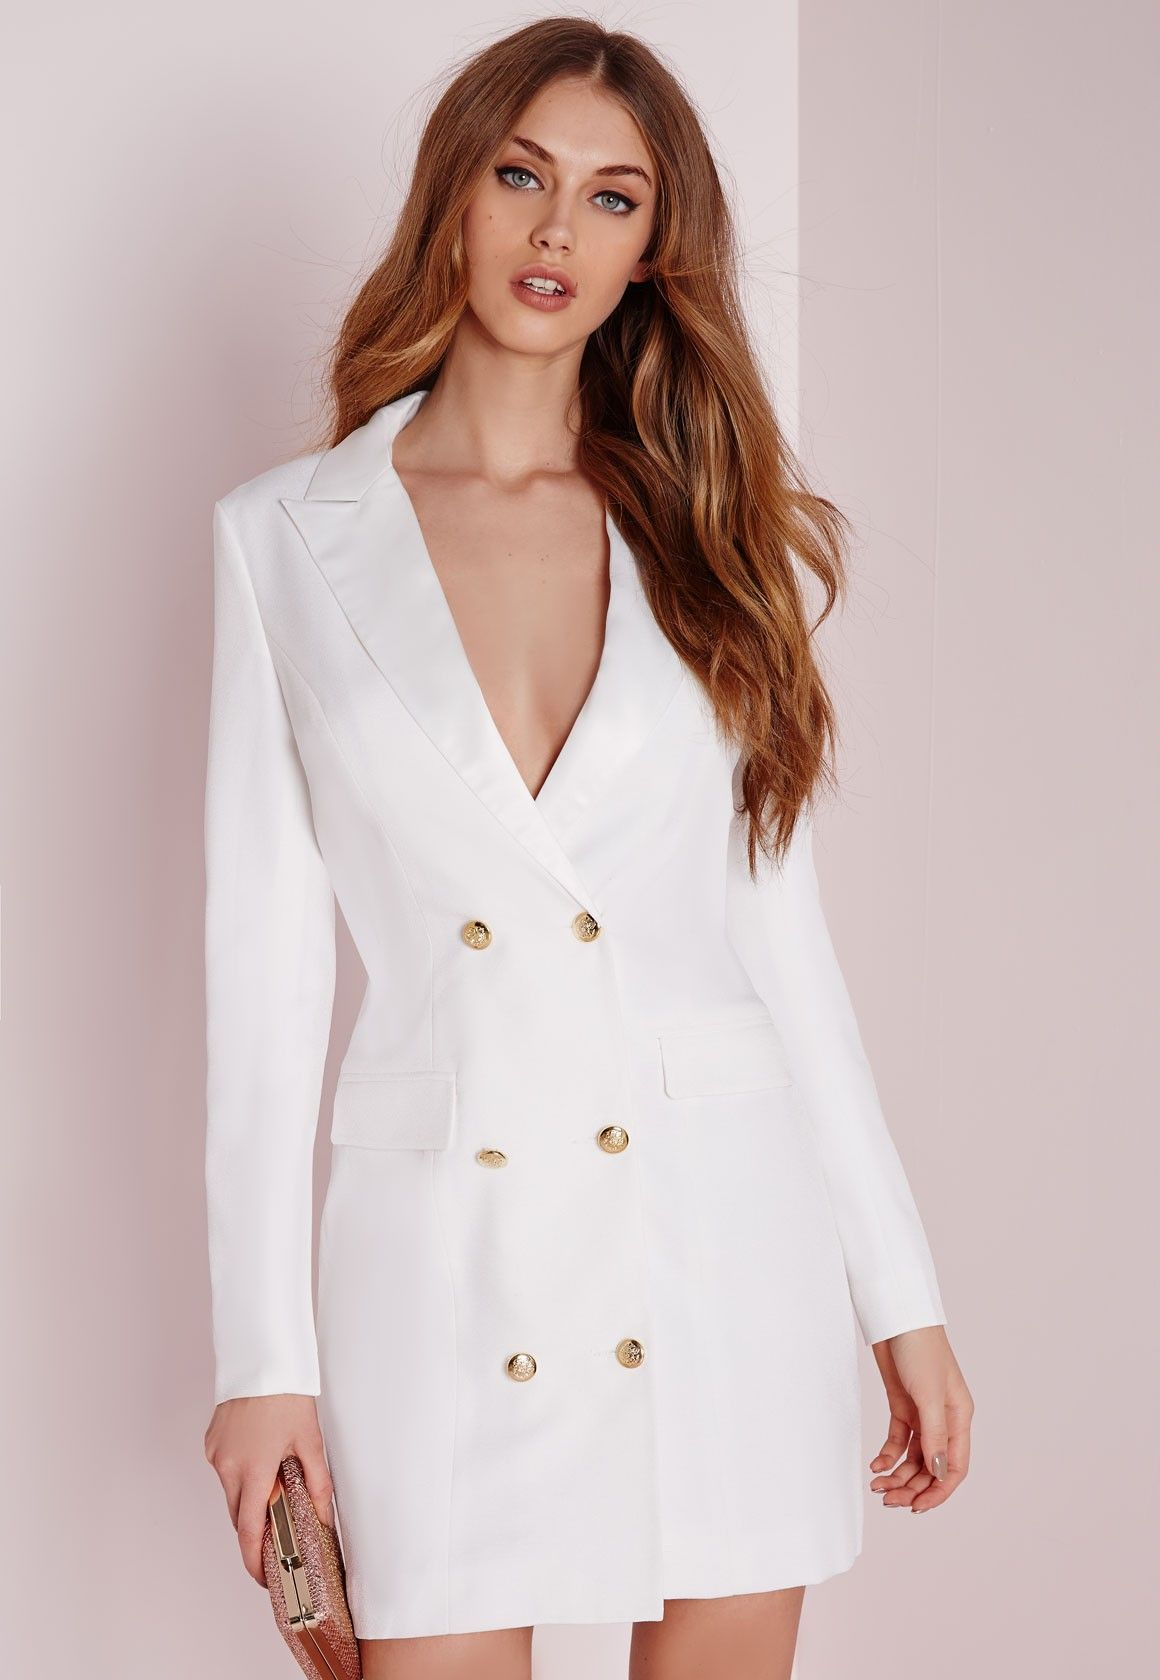 Long Sleeve Blazer Dress White | Blazer dress, Blazers and Missguided